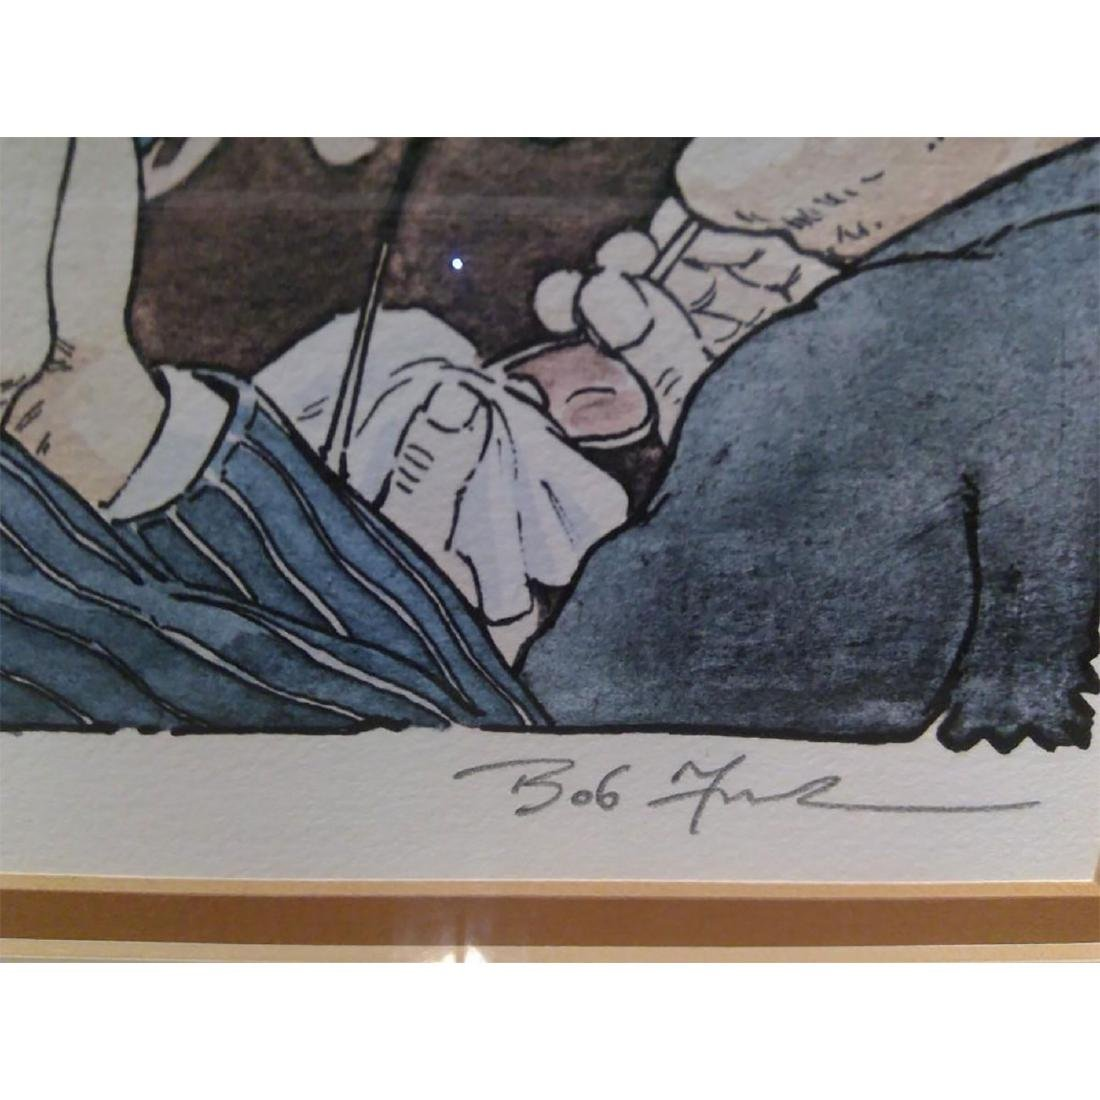 SET OF 2 SIGNED BOB FARNDON LIMITED EDITION LITHOGRAPHS - 4